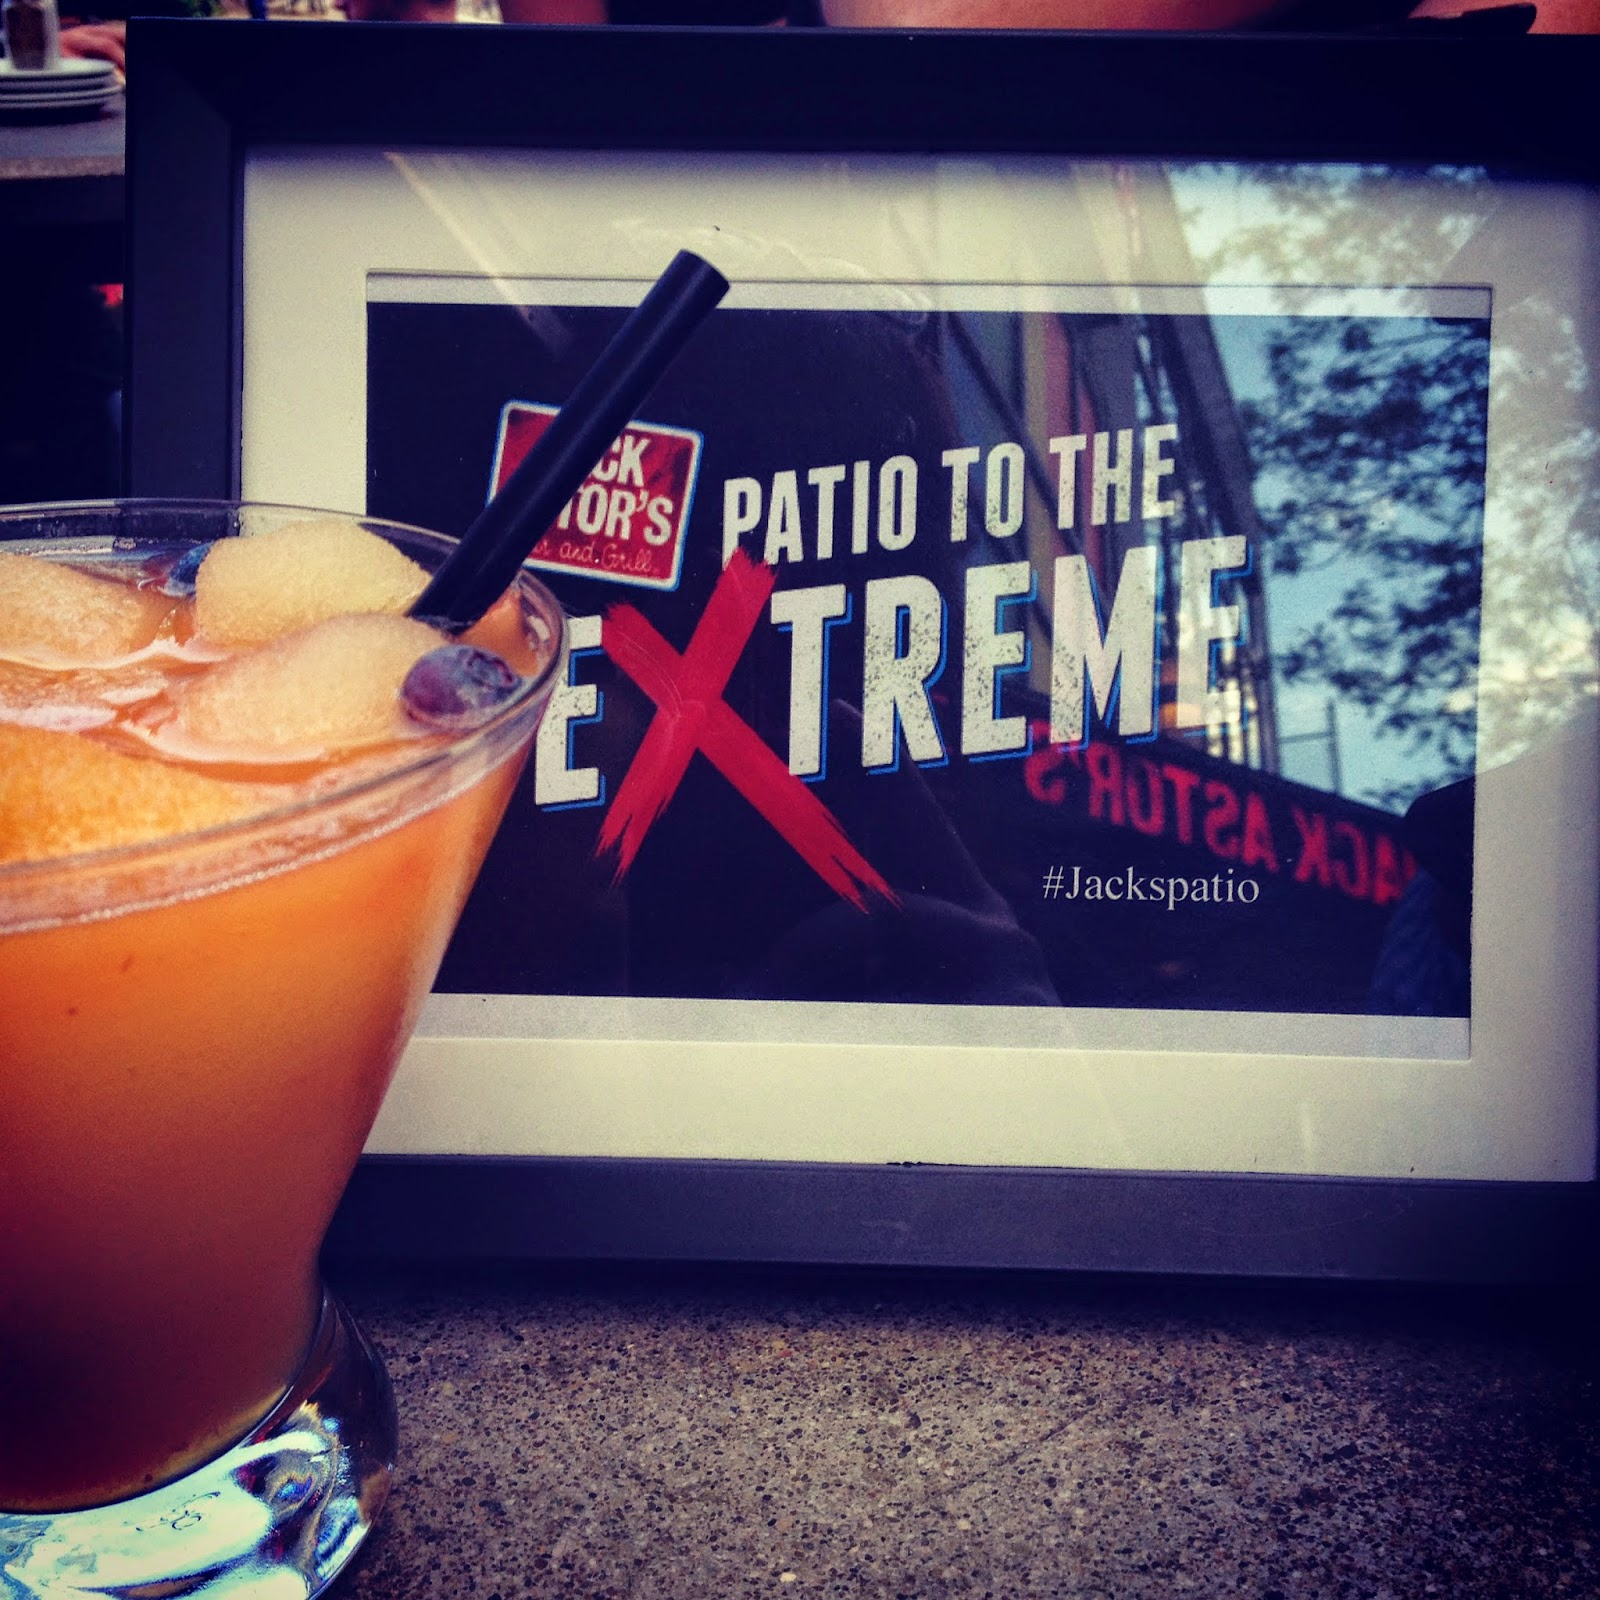 Jack Astor's Patio to the Extreme